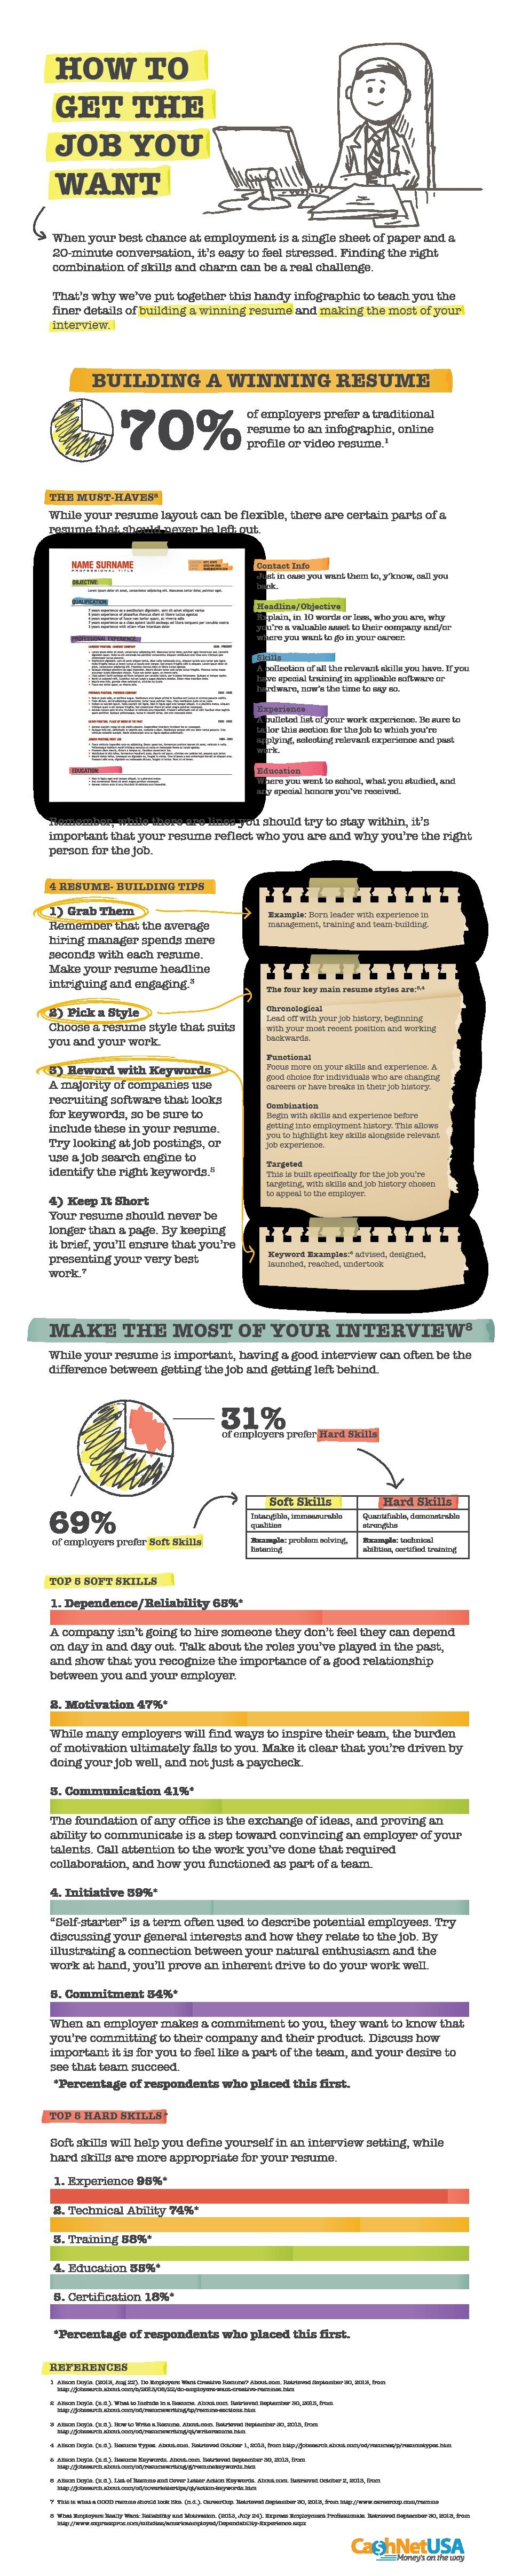 How to get the job you want infographic job help job